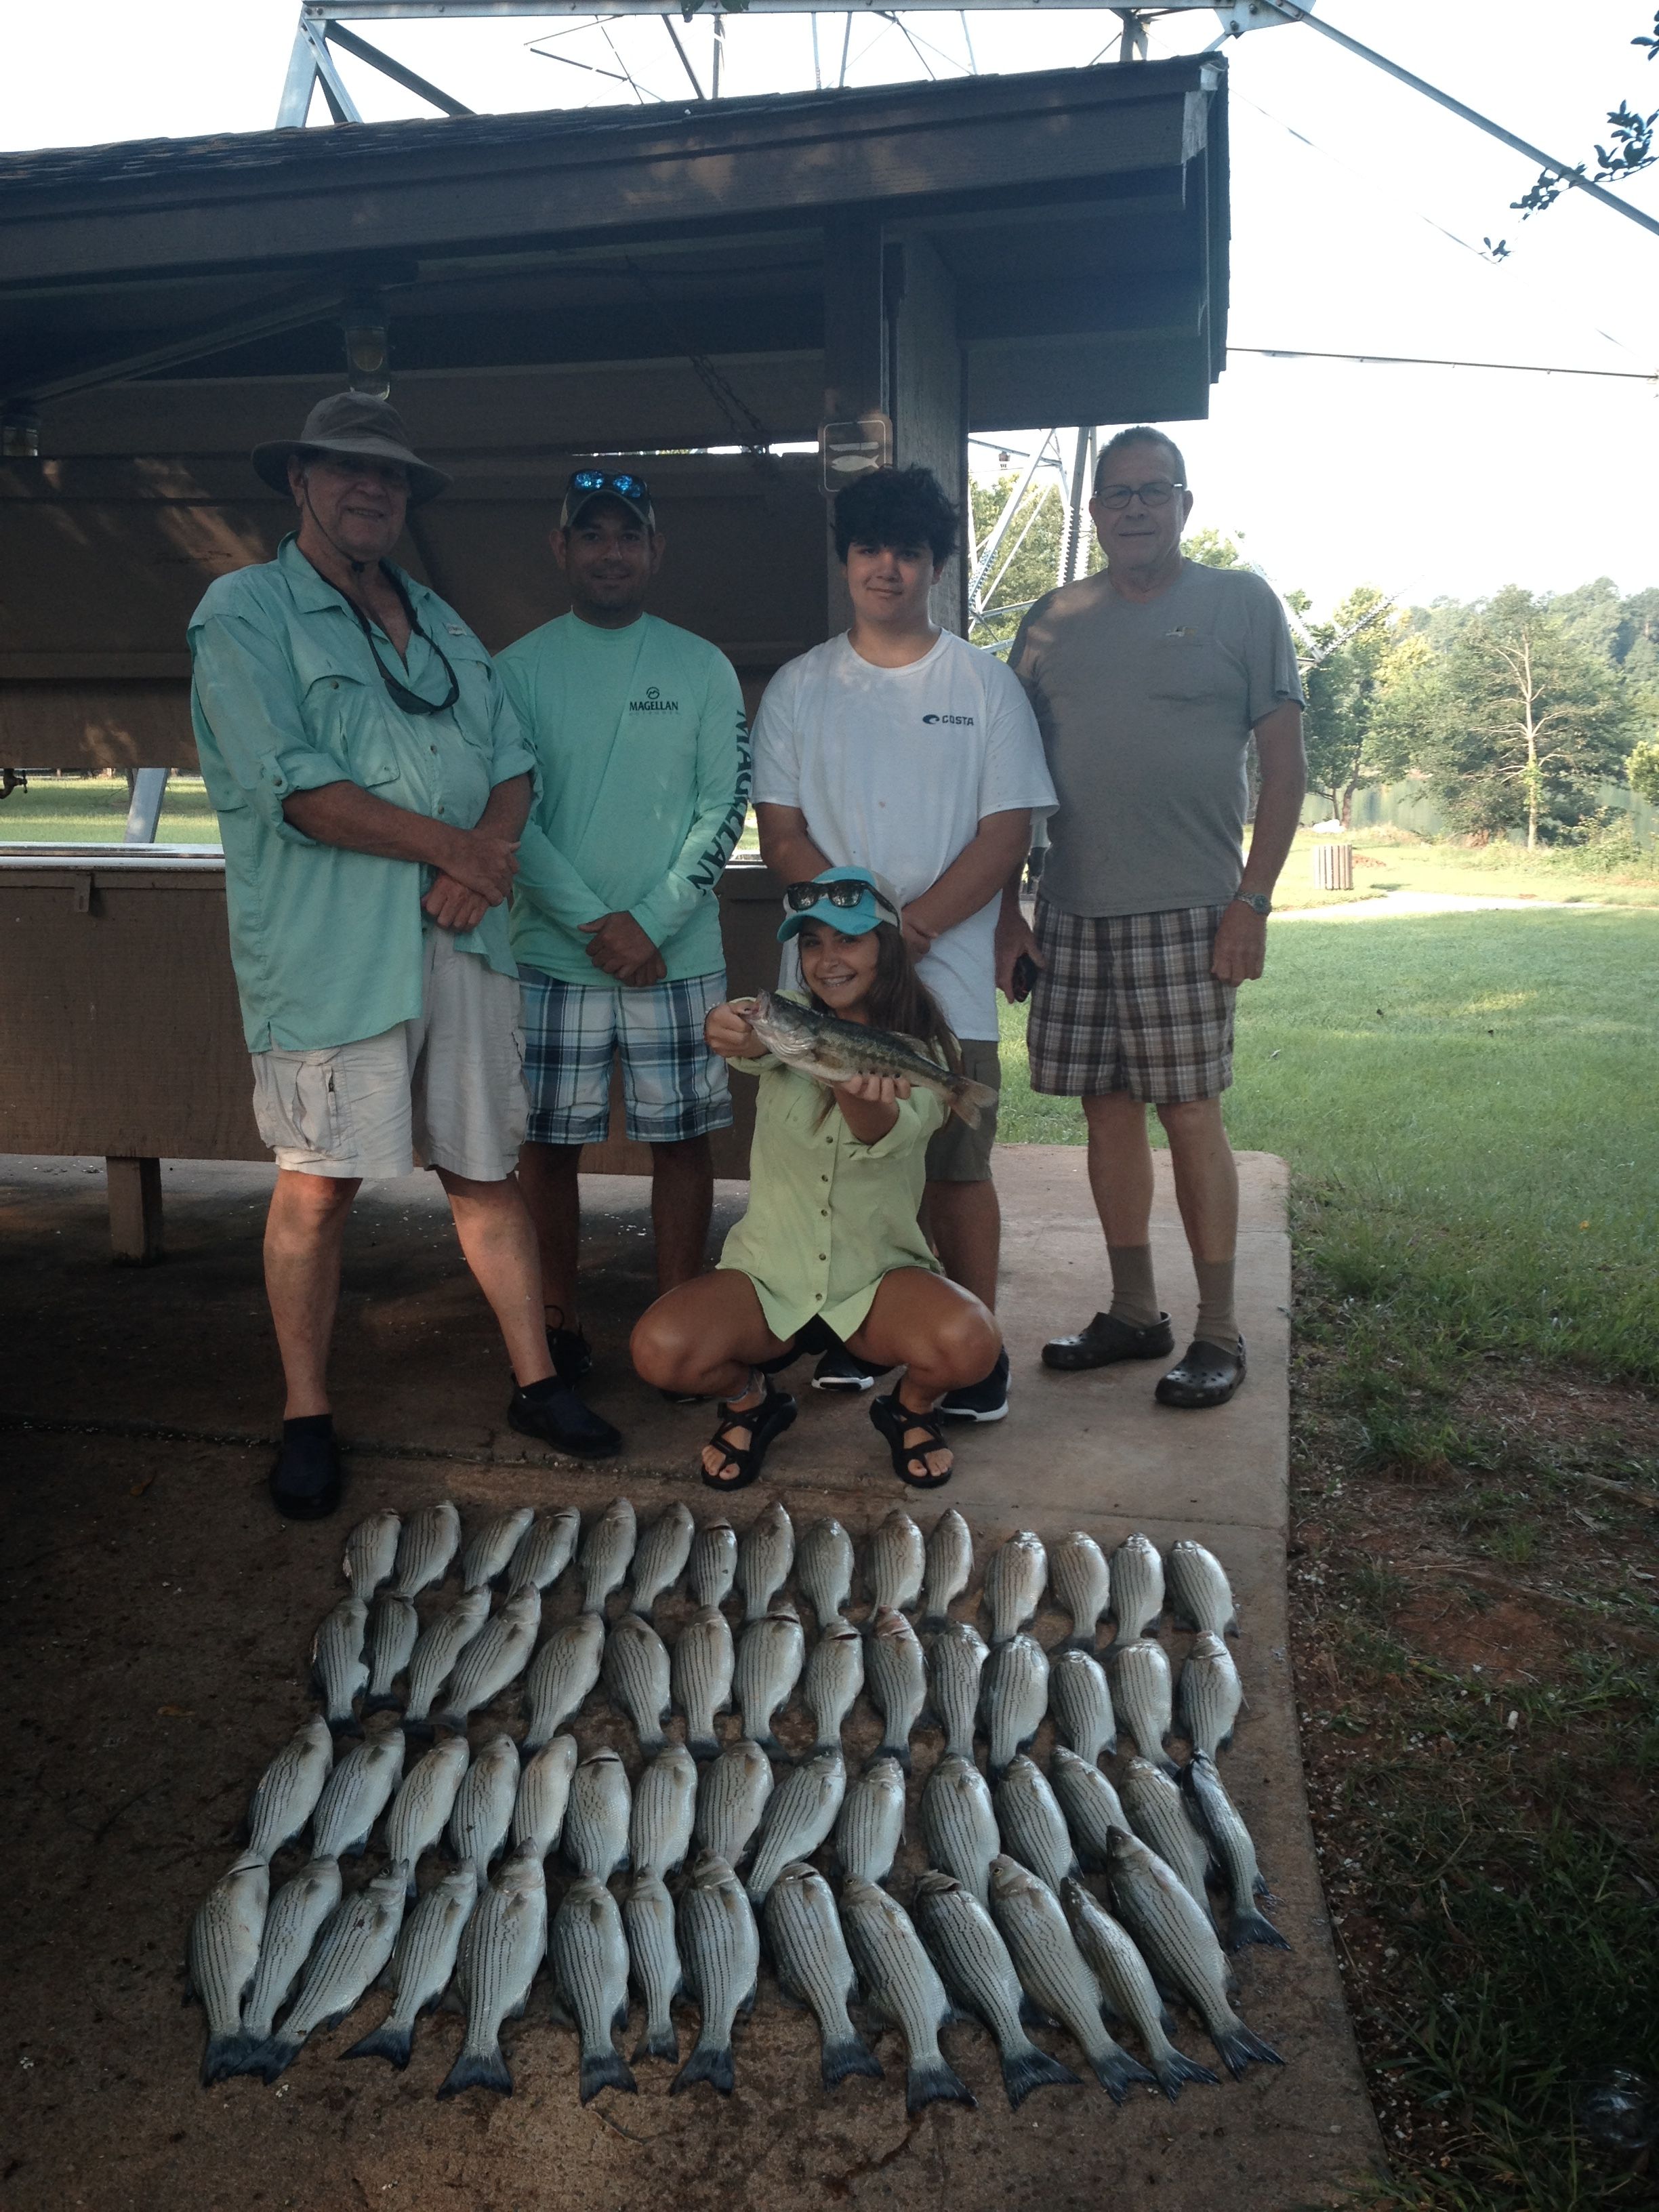 July 8, 2017 RayWalker, Robert Robinson, Reese Perez, Ronnie Walker, and Daphne Walker with their limit of stripers and hybrids